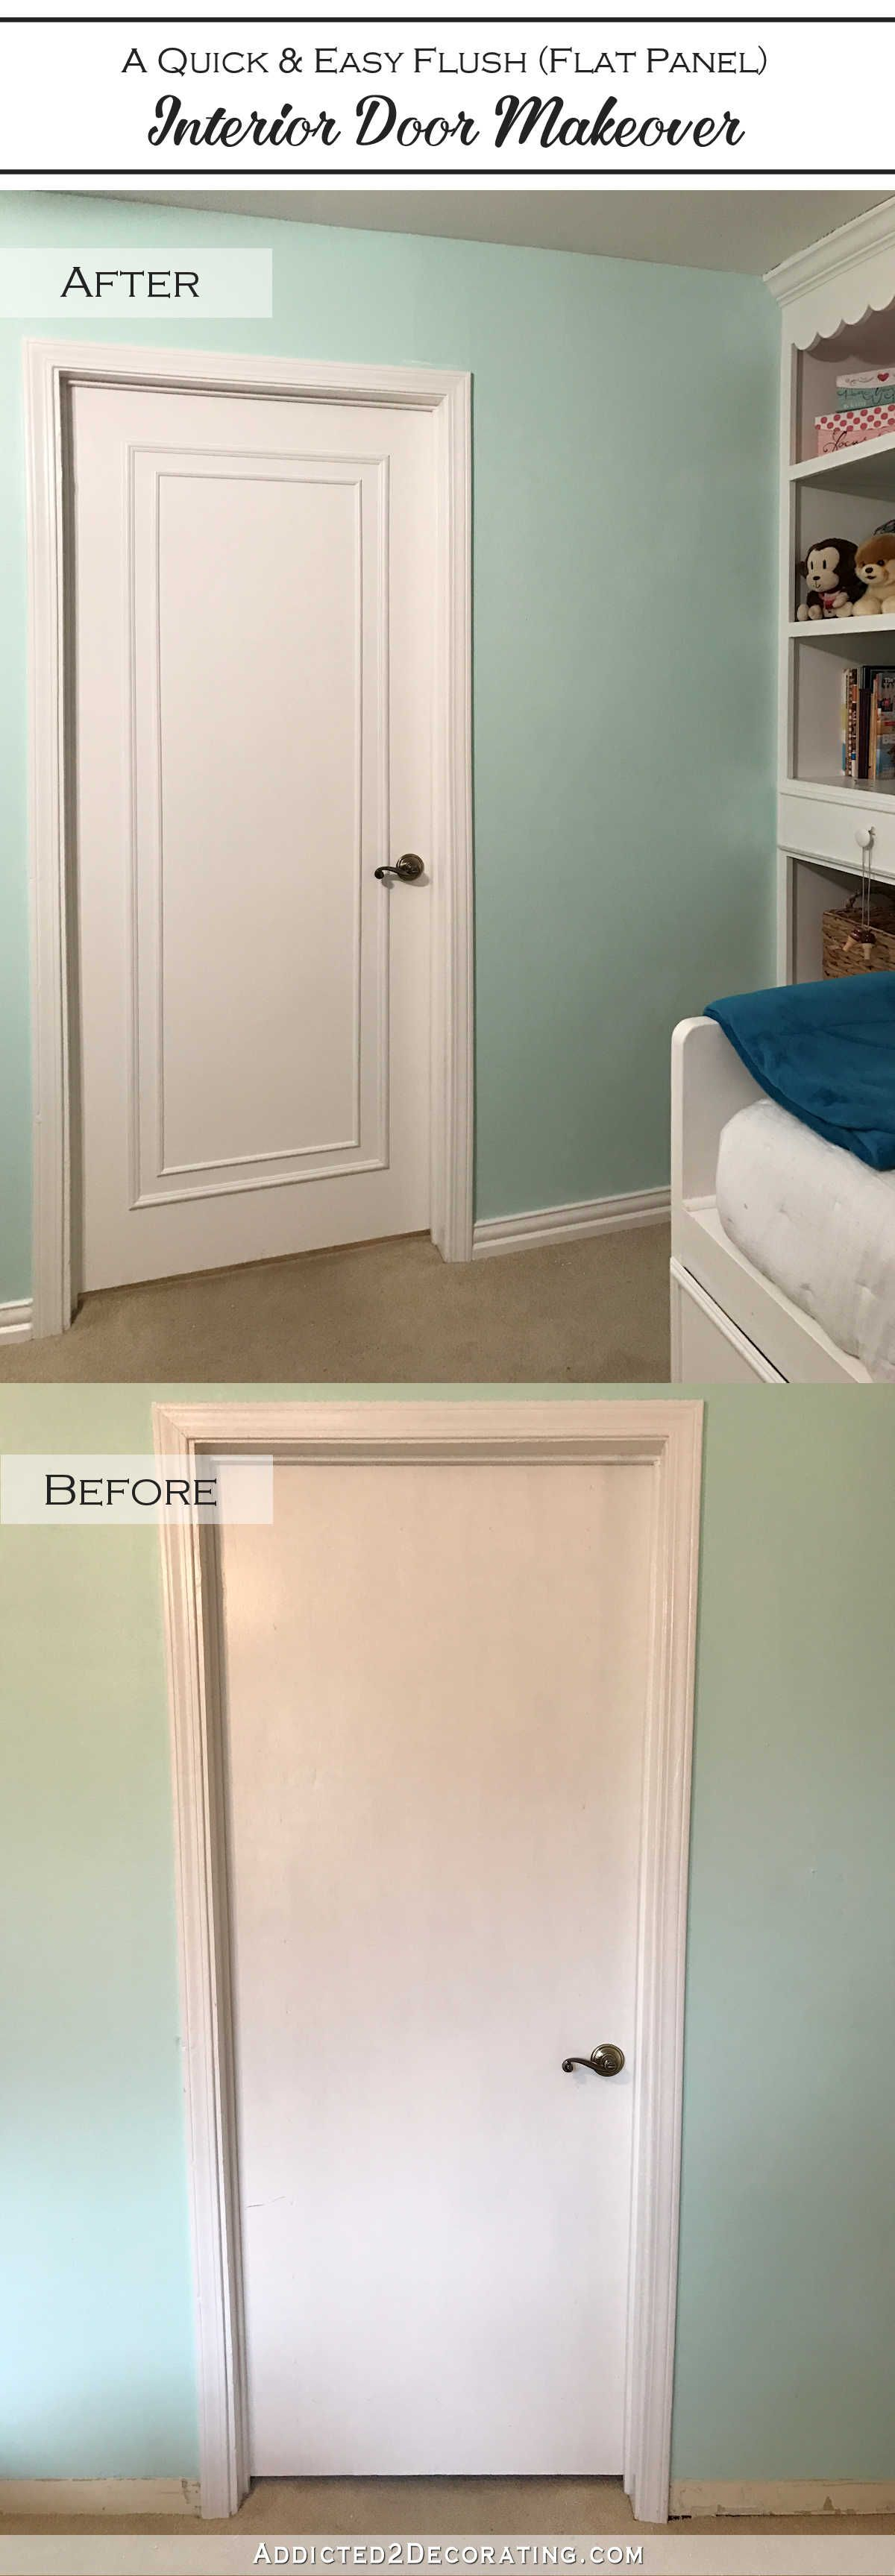 An Easy \u0026 Inexpensive Way To Update Flush (Flat Panel) Interior Doors With Moulding : door moldings - Pezcame.Com